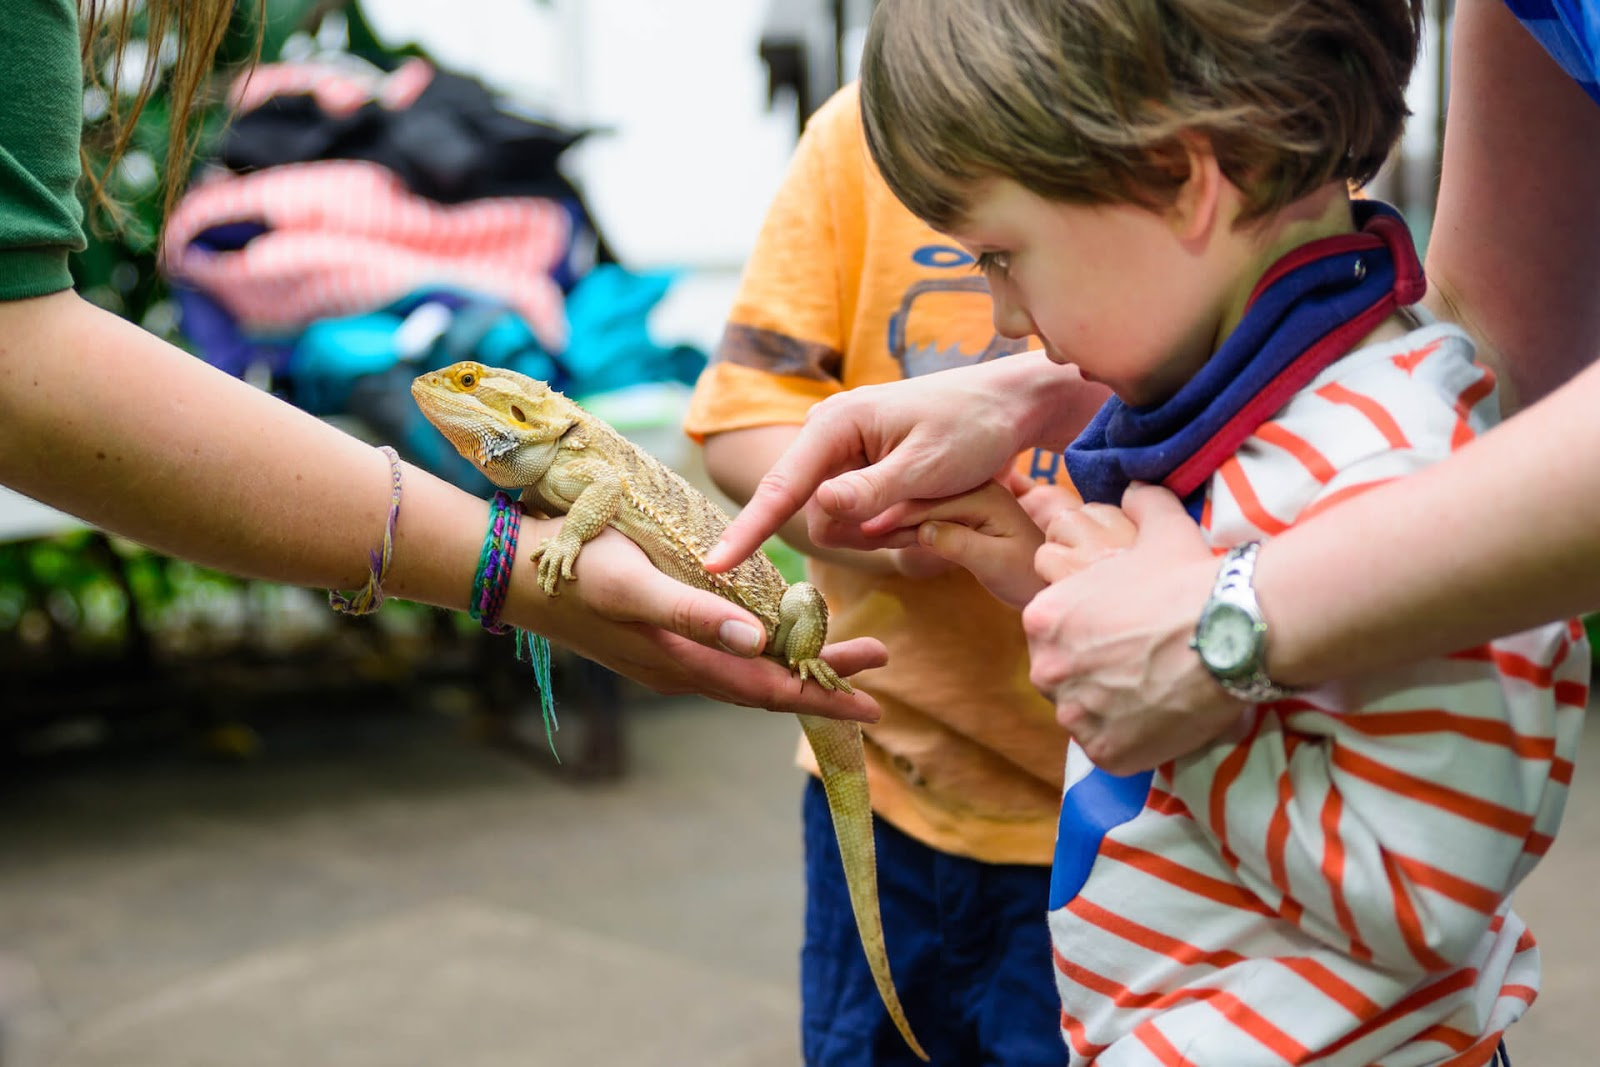 Young boy touching a bearded dragon at a zoo party